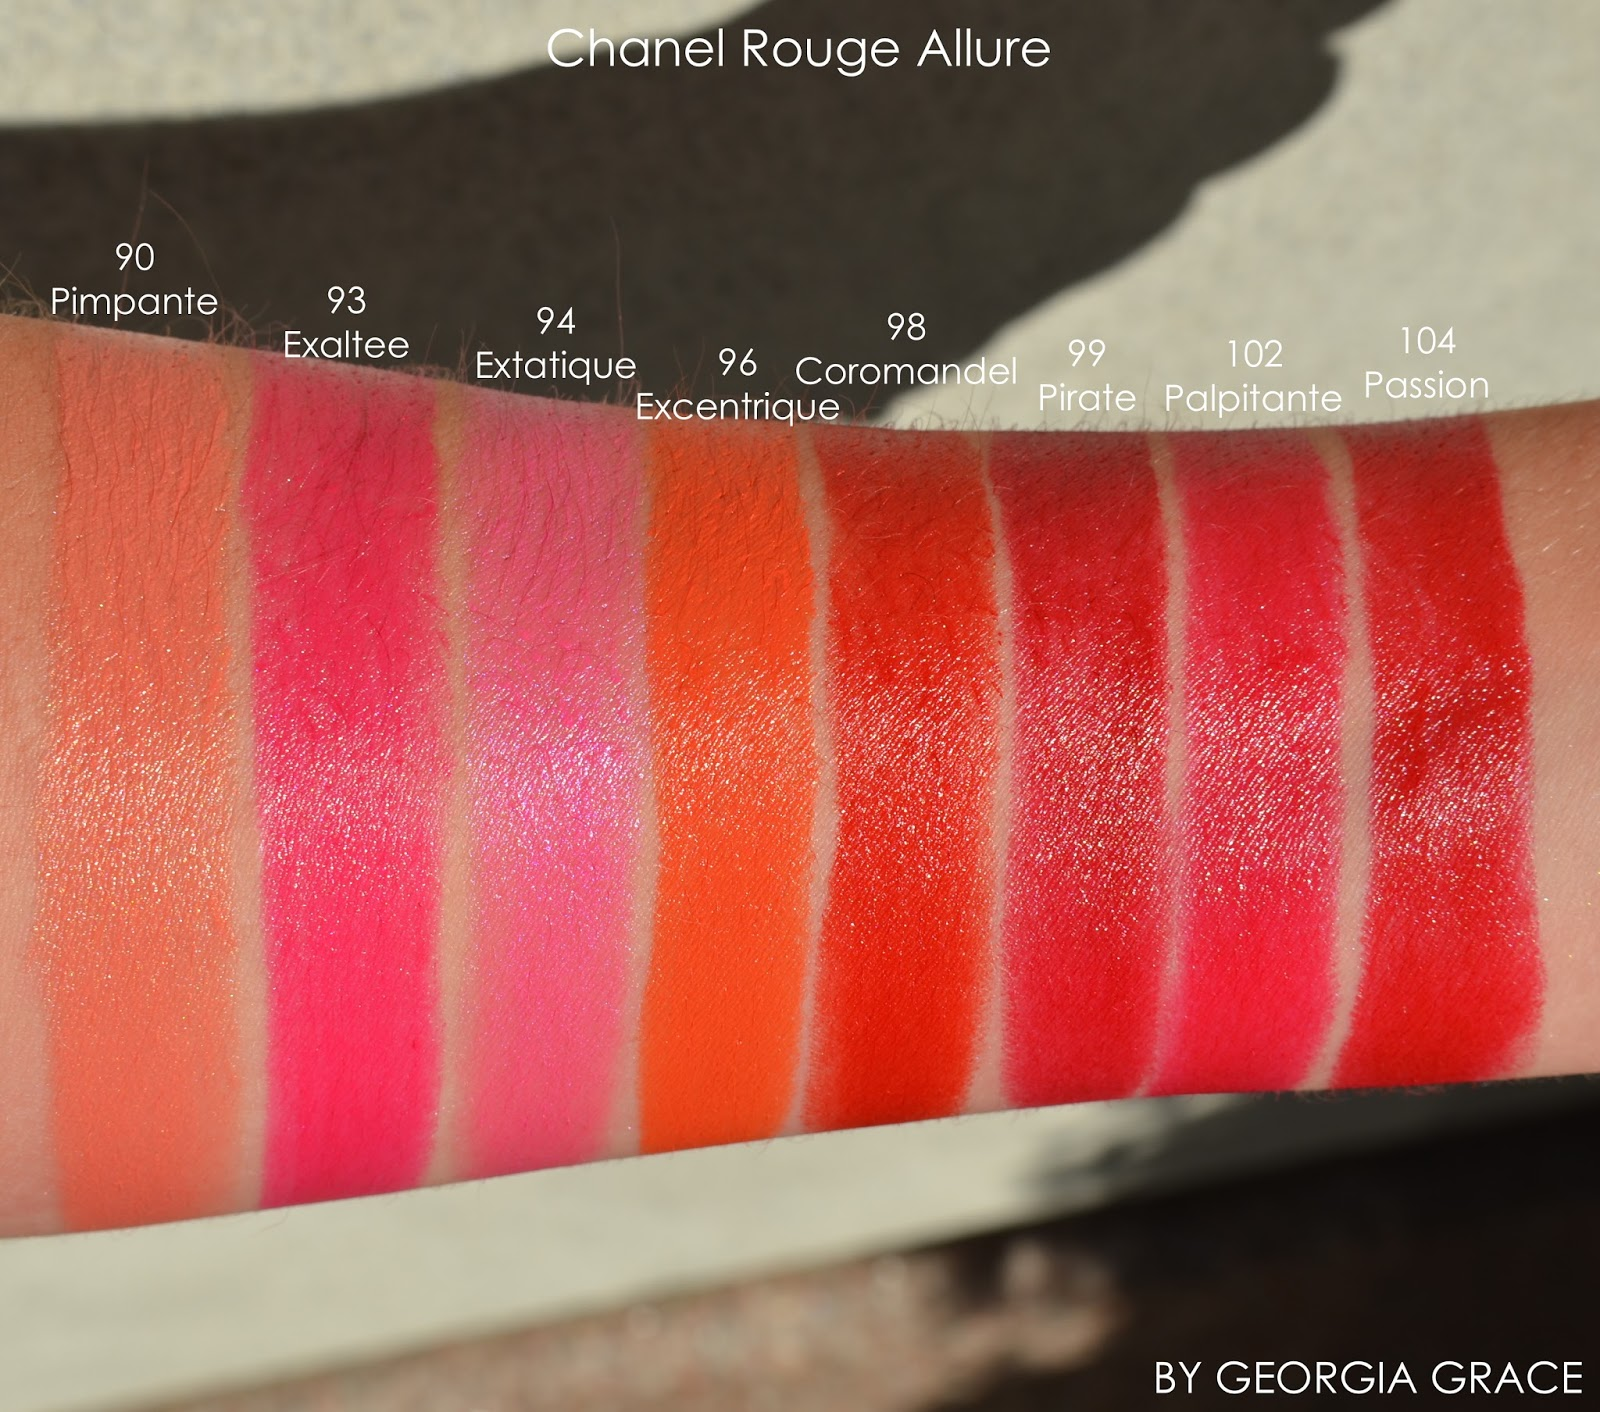 Chanel Rouge Allure Swatches Of All Shades By Georgia Grace